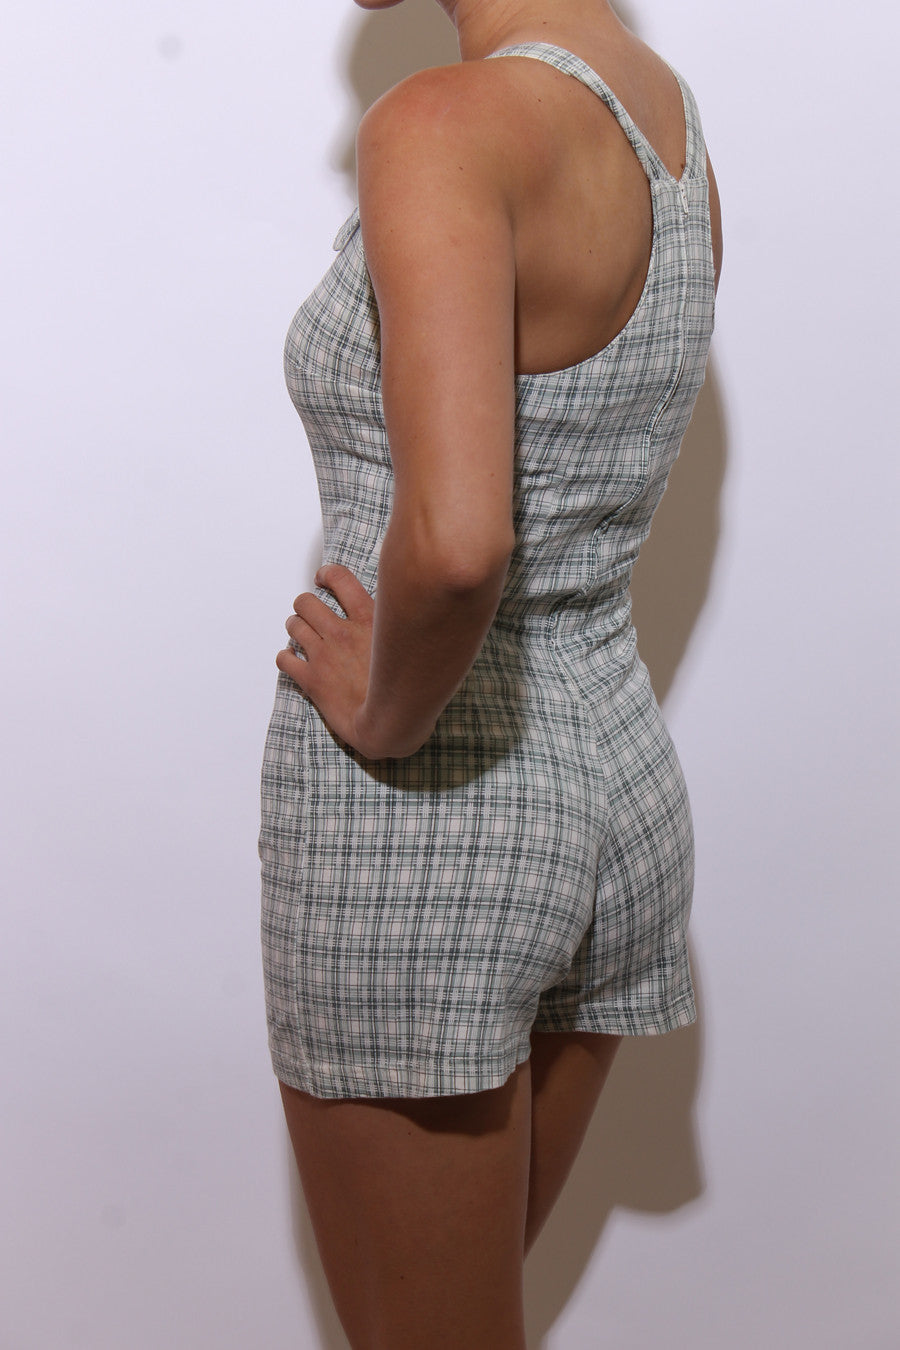 vintage 1990's 90's plaid shorts romper micro mini jumpsuit sleeveless playsuit overalls cream green print XS-S